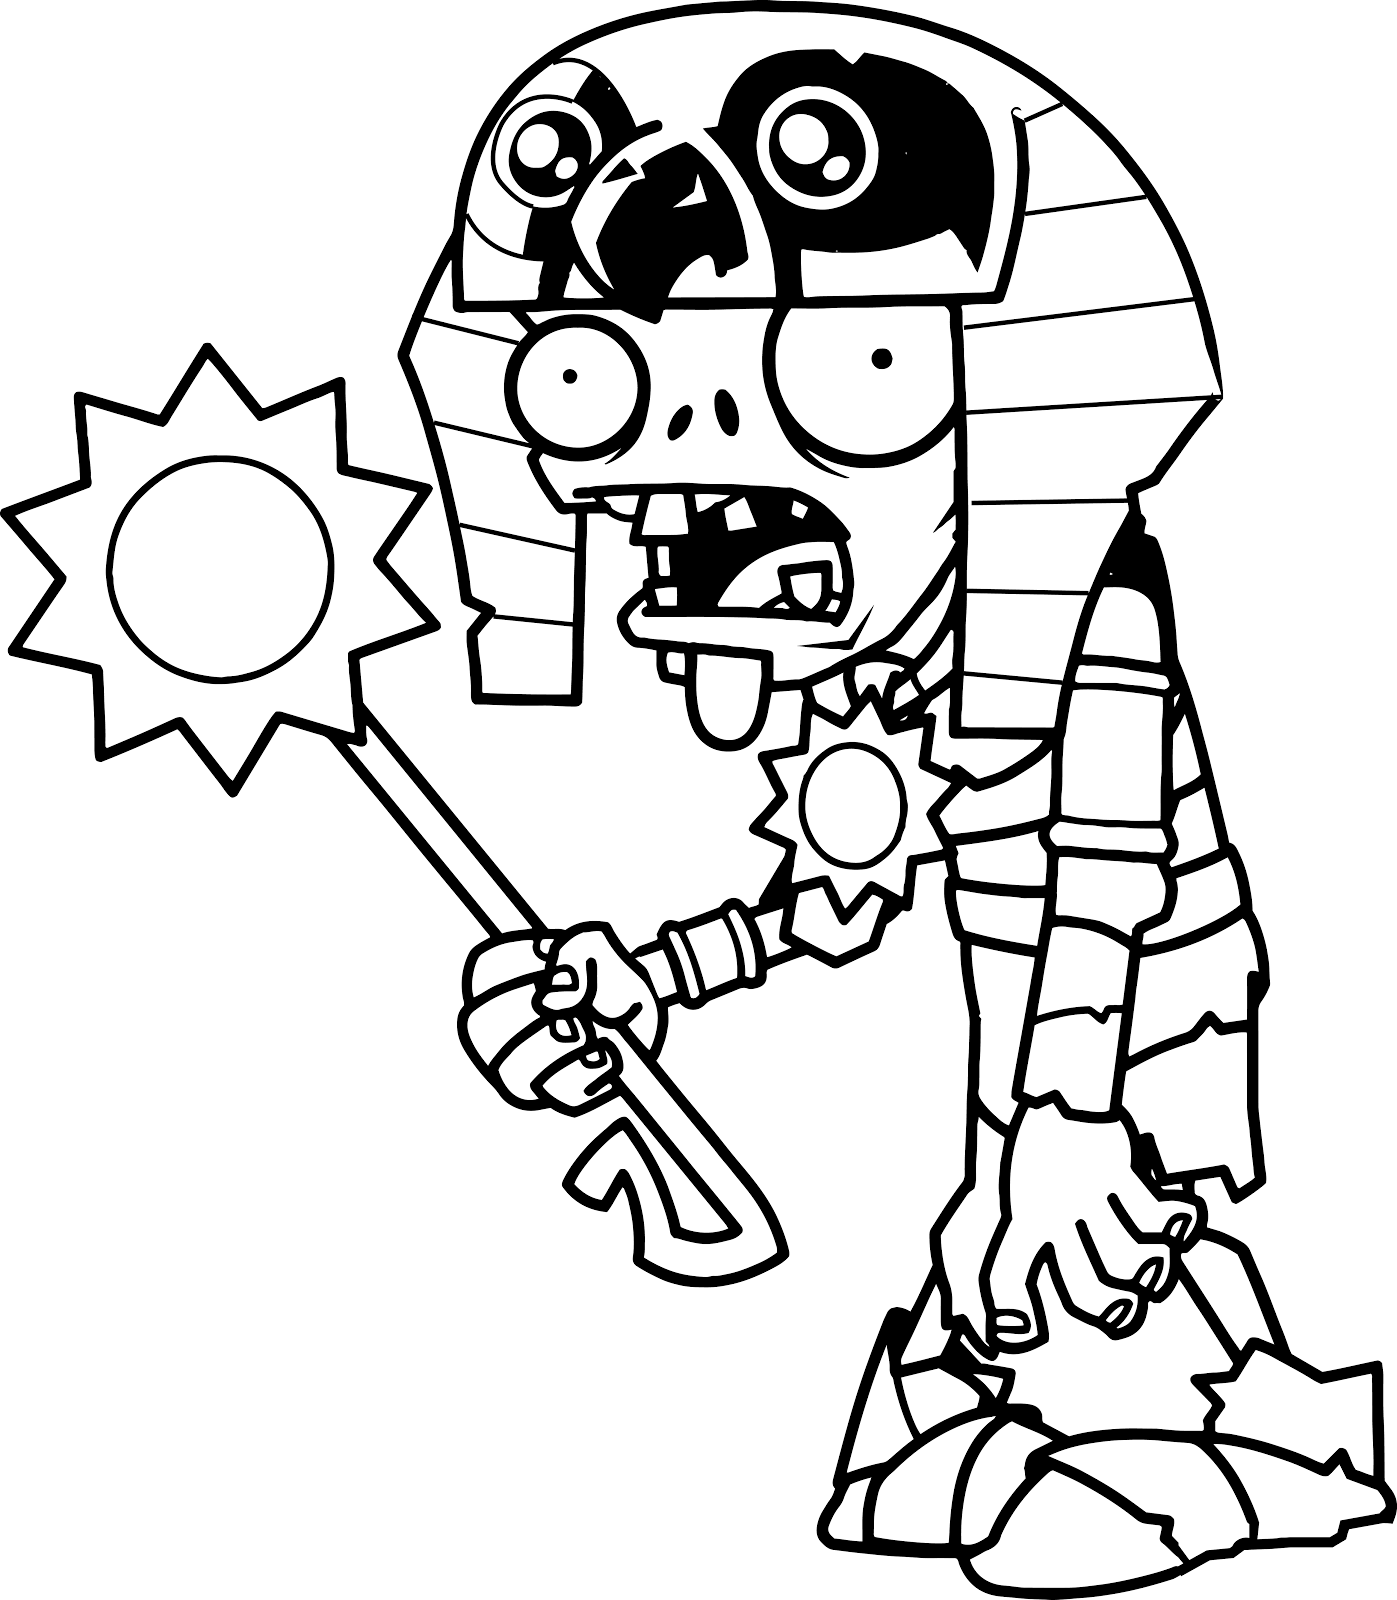 pvz garden warfare coloring pages - photo#29